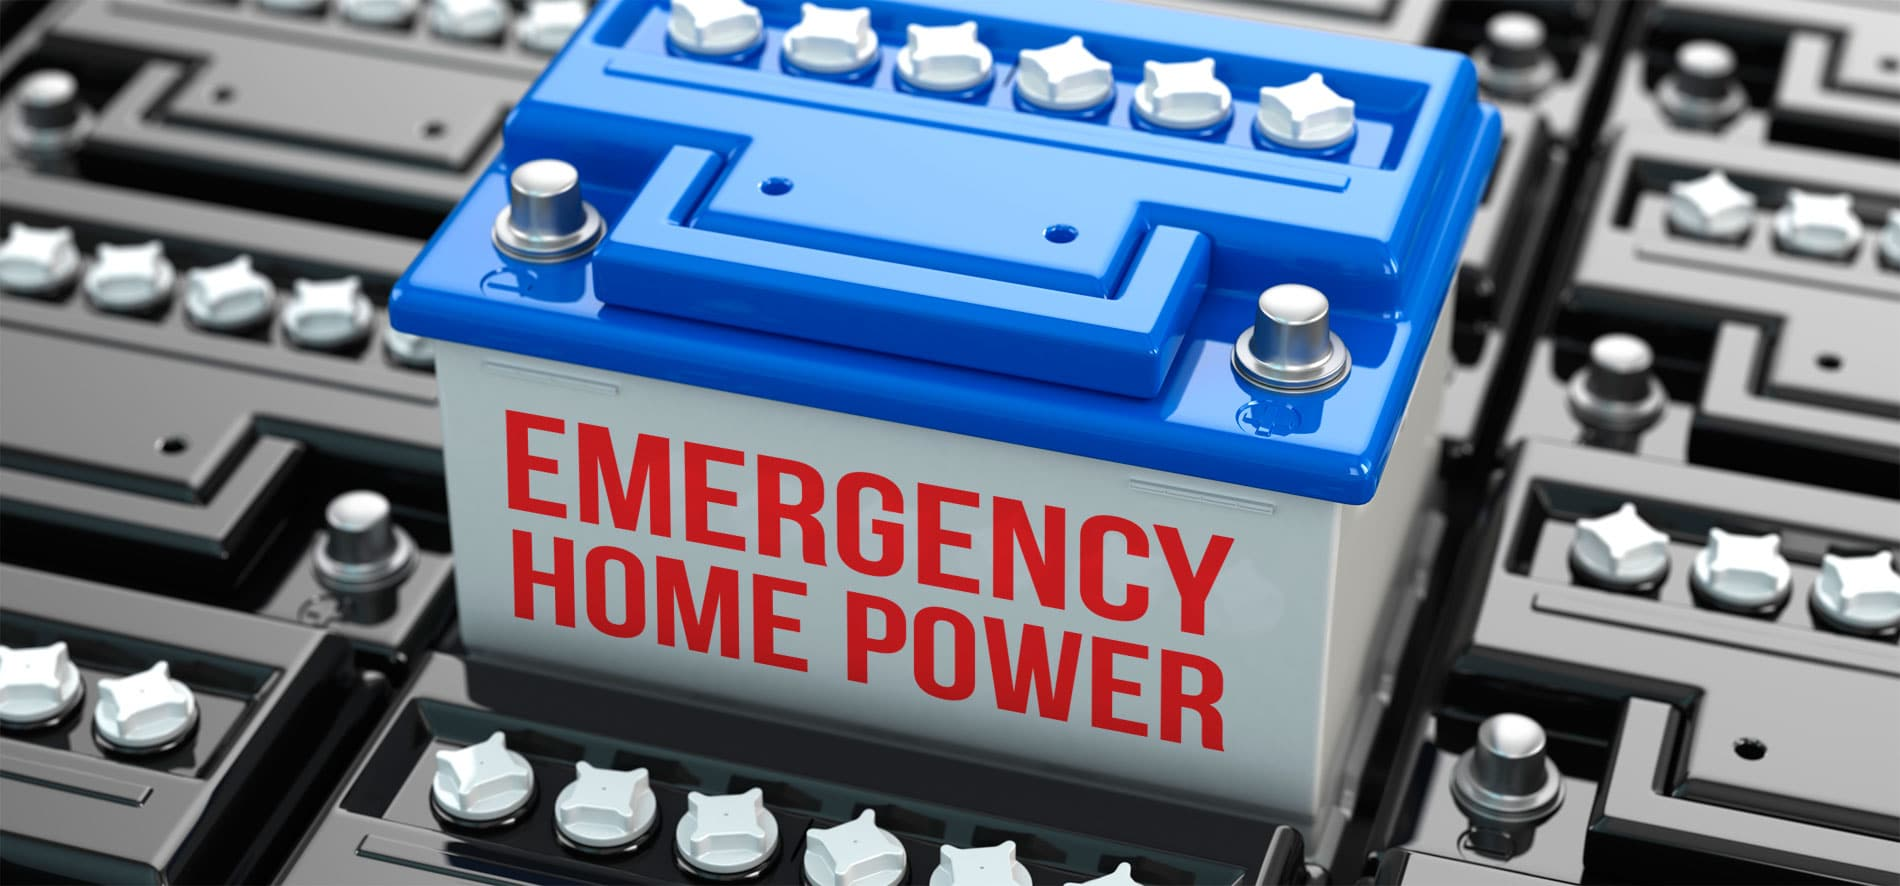 Home Emergency Power Backup Systems Home Review